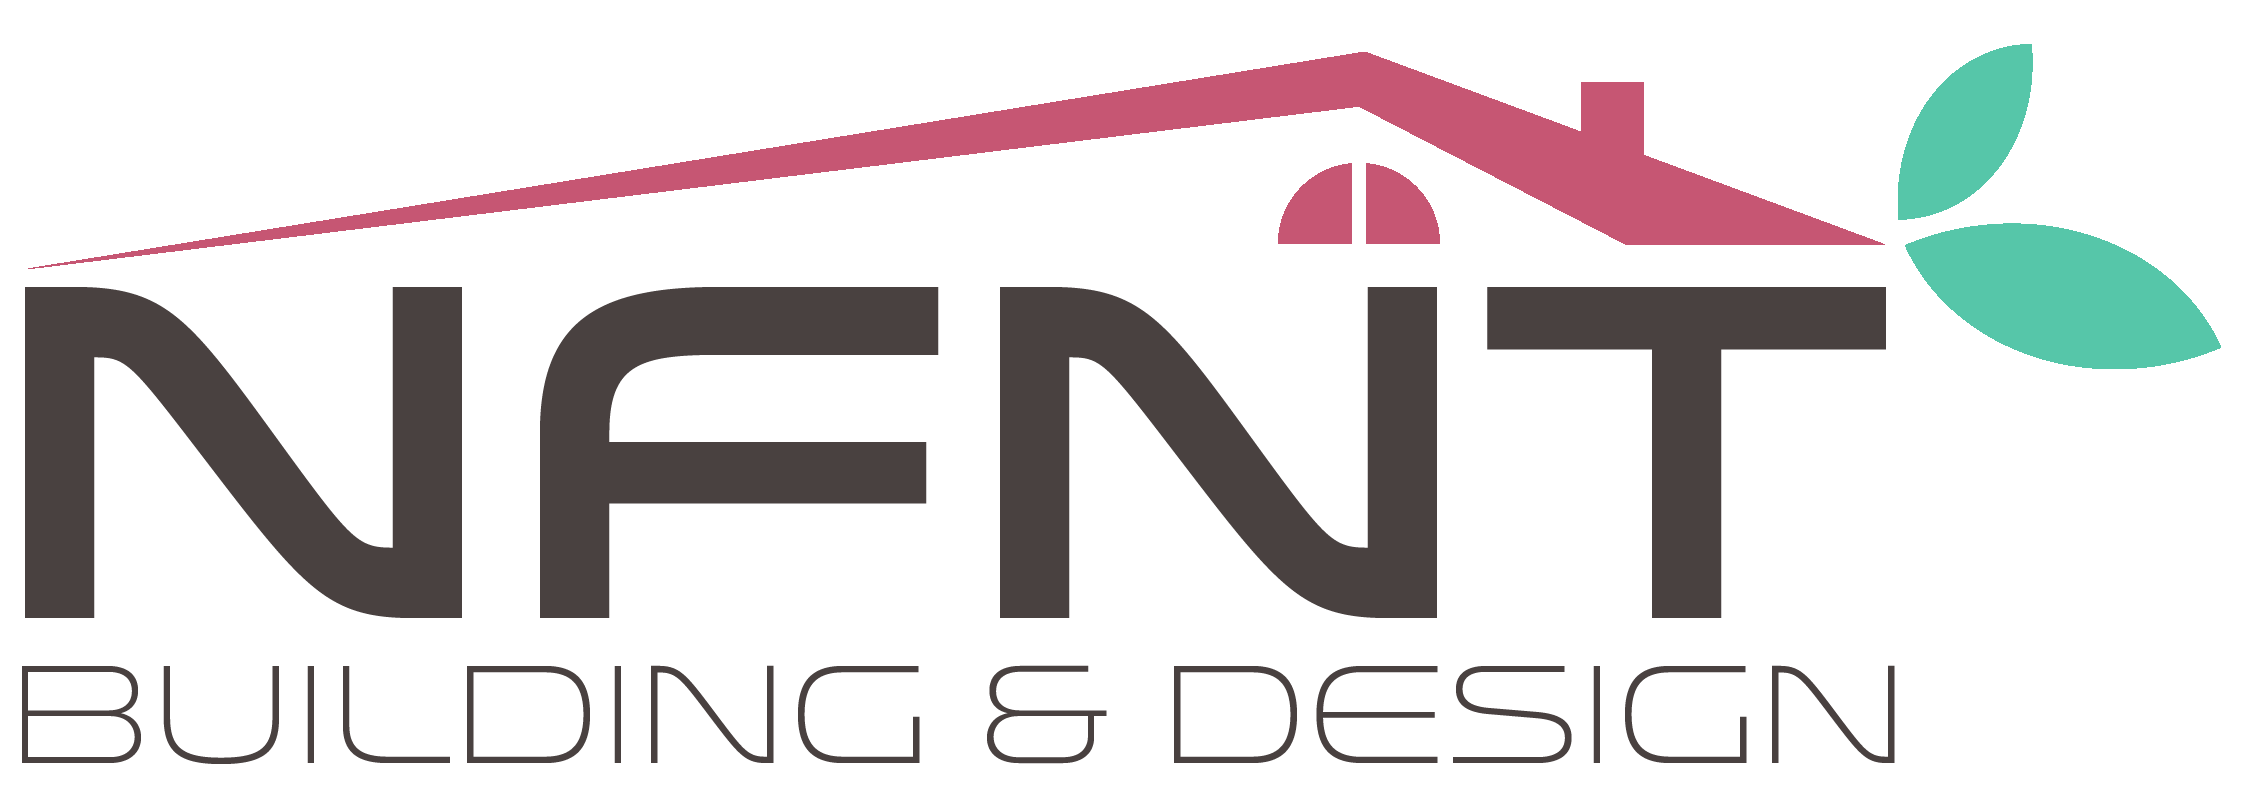 NFNT Building & Design - Kitchen and Bathroom Remodeling Contractor